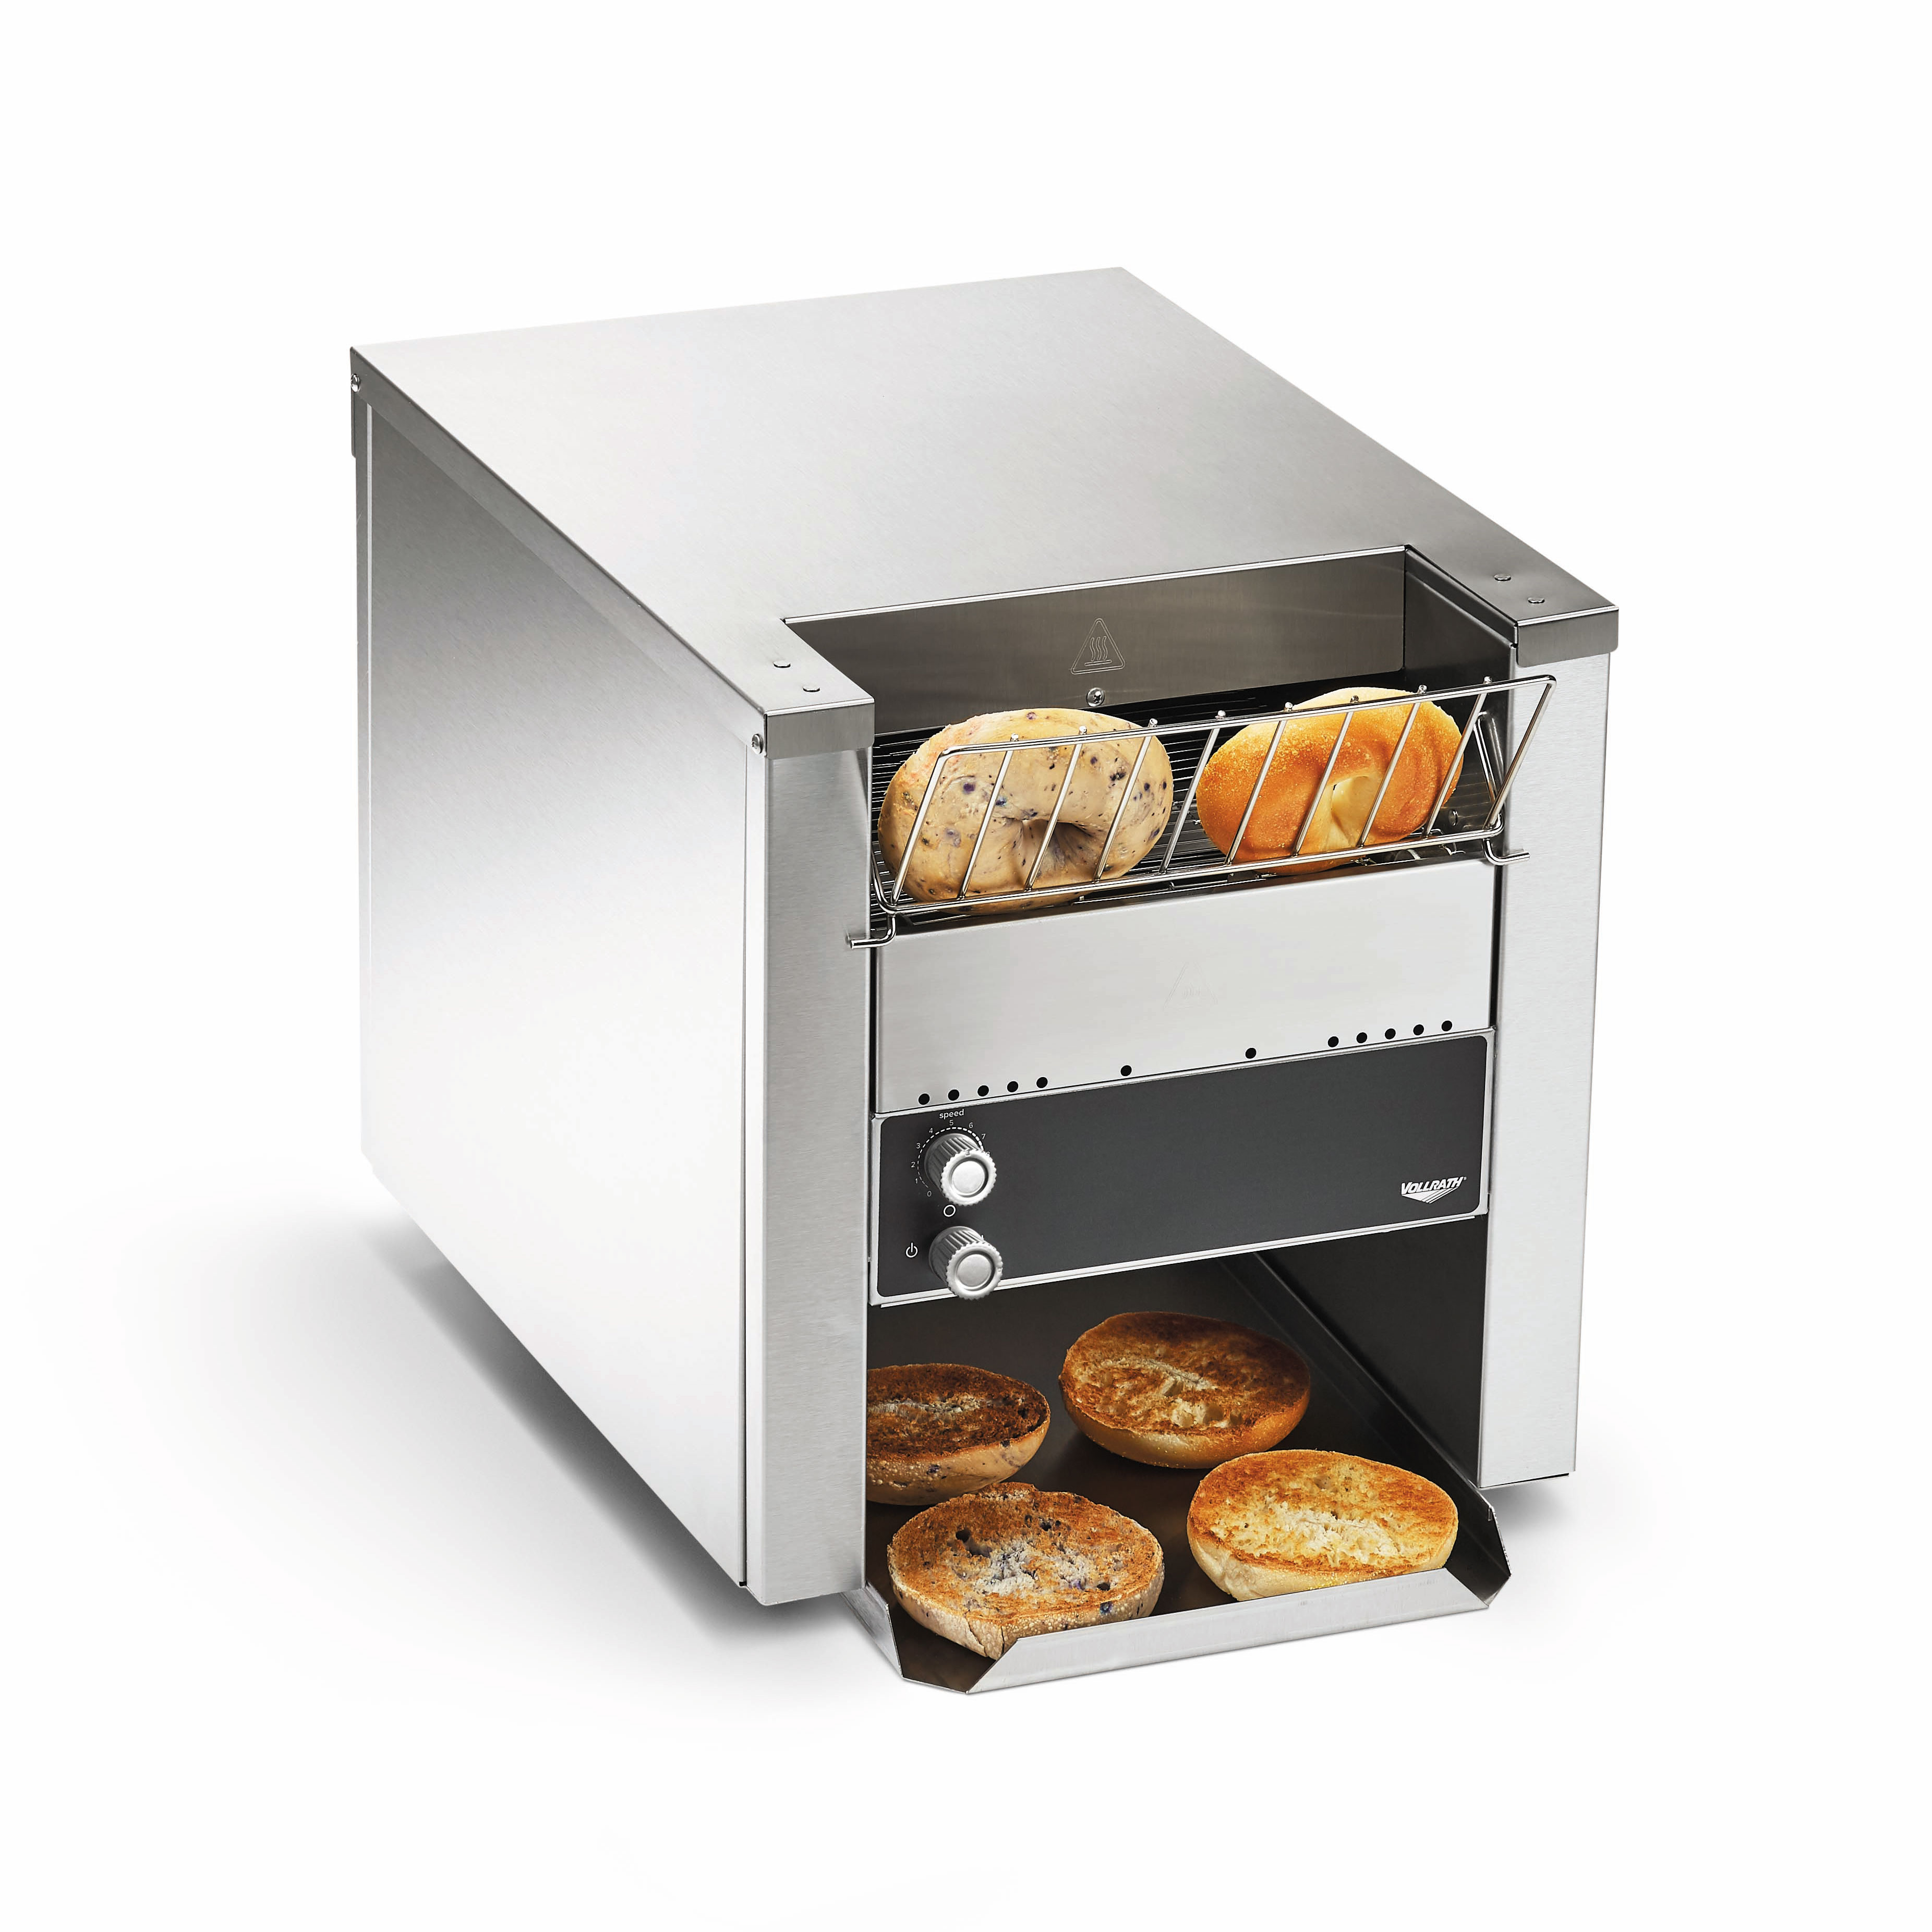 Vollrath CT4B-2401200 toaster, conveyor type